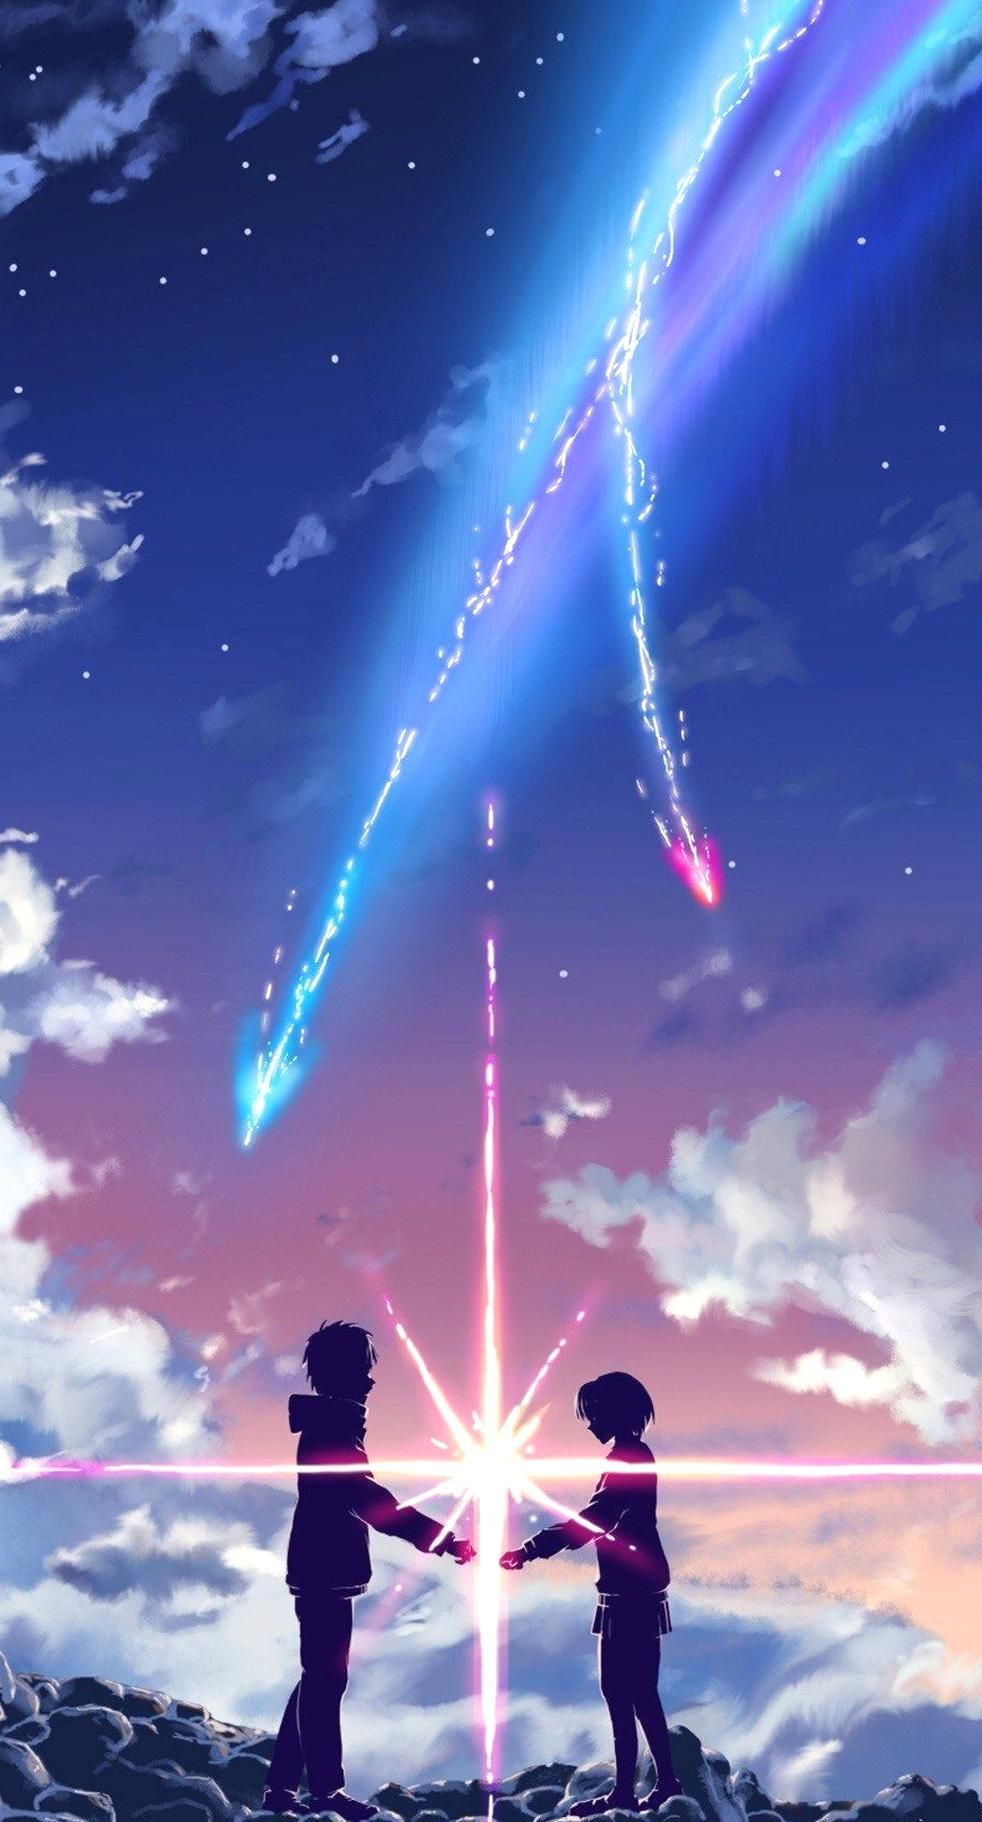 Anime Wallpaper Iphone Wallpaper Nice in 2020 Your name